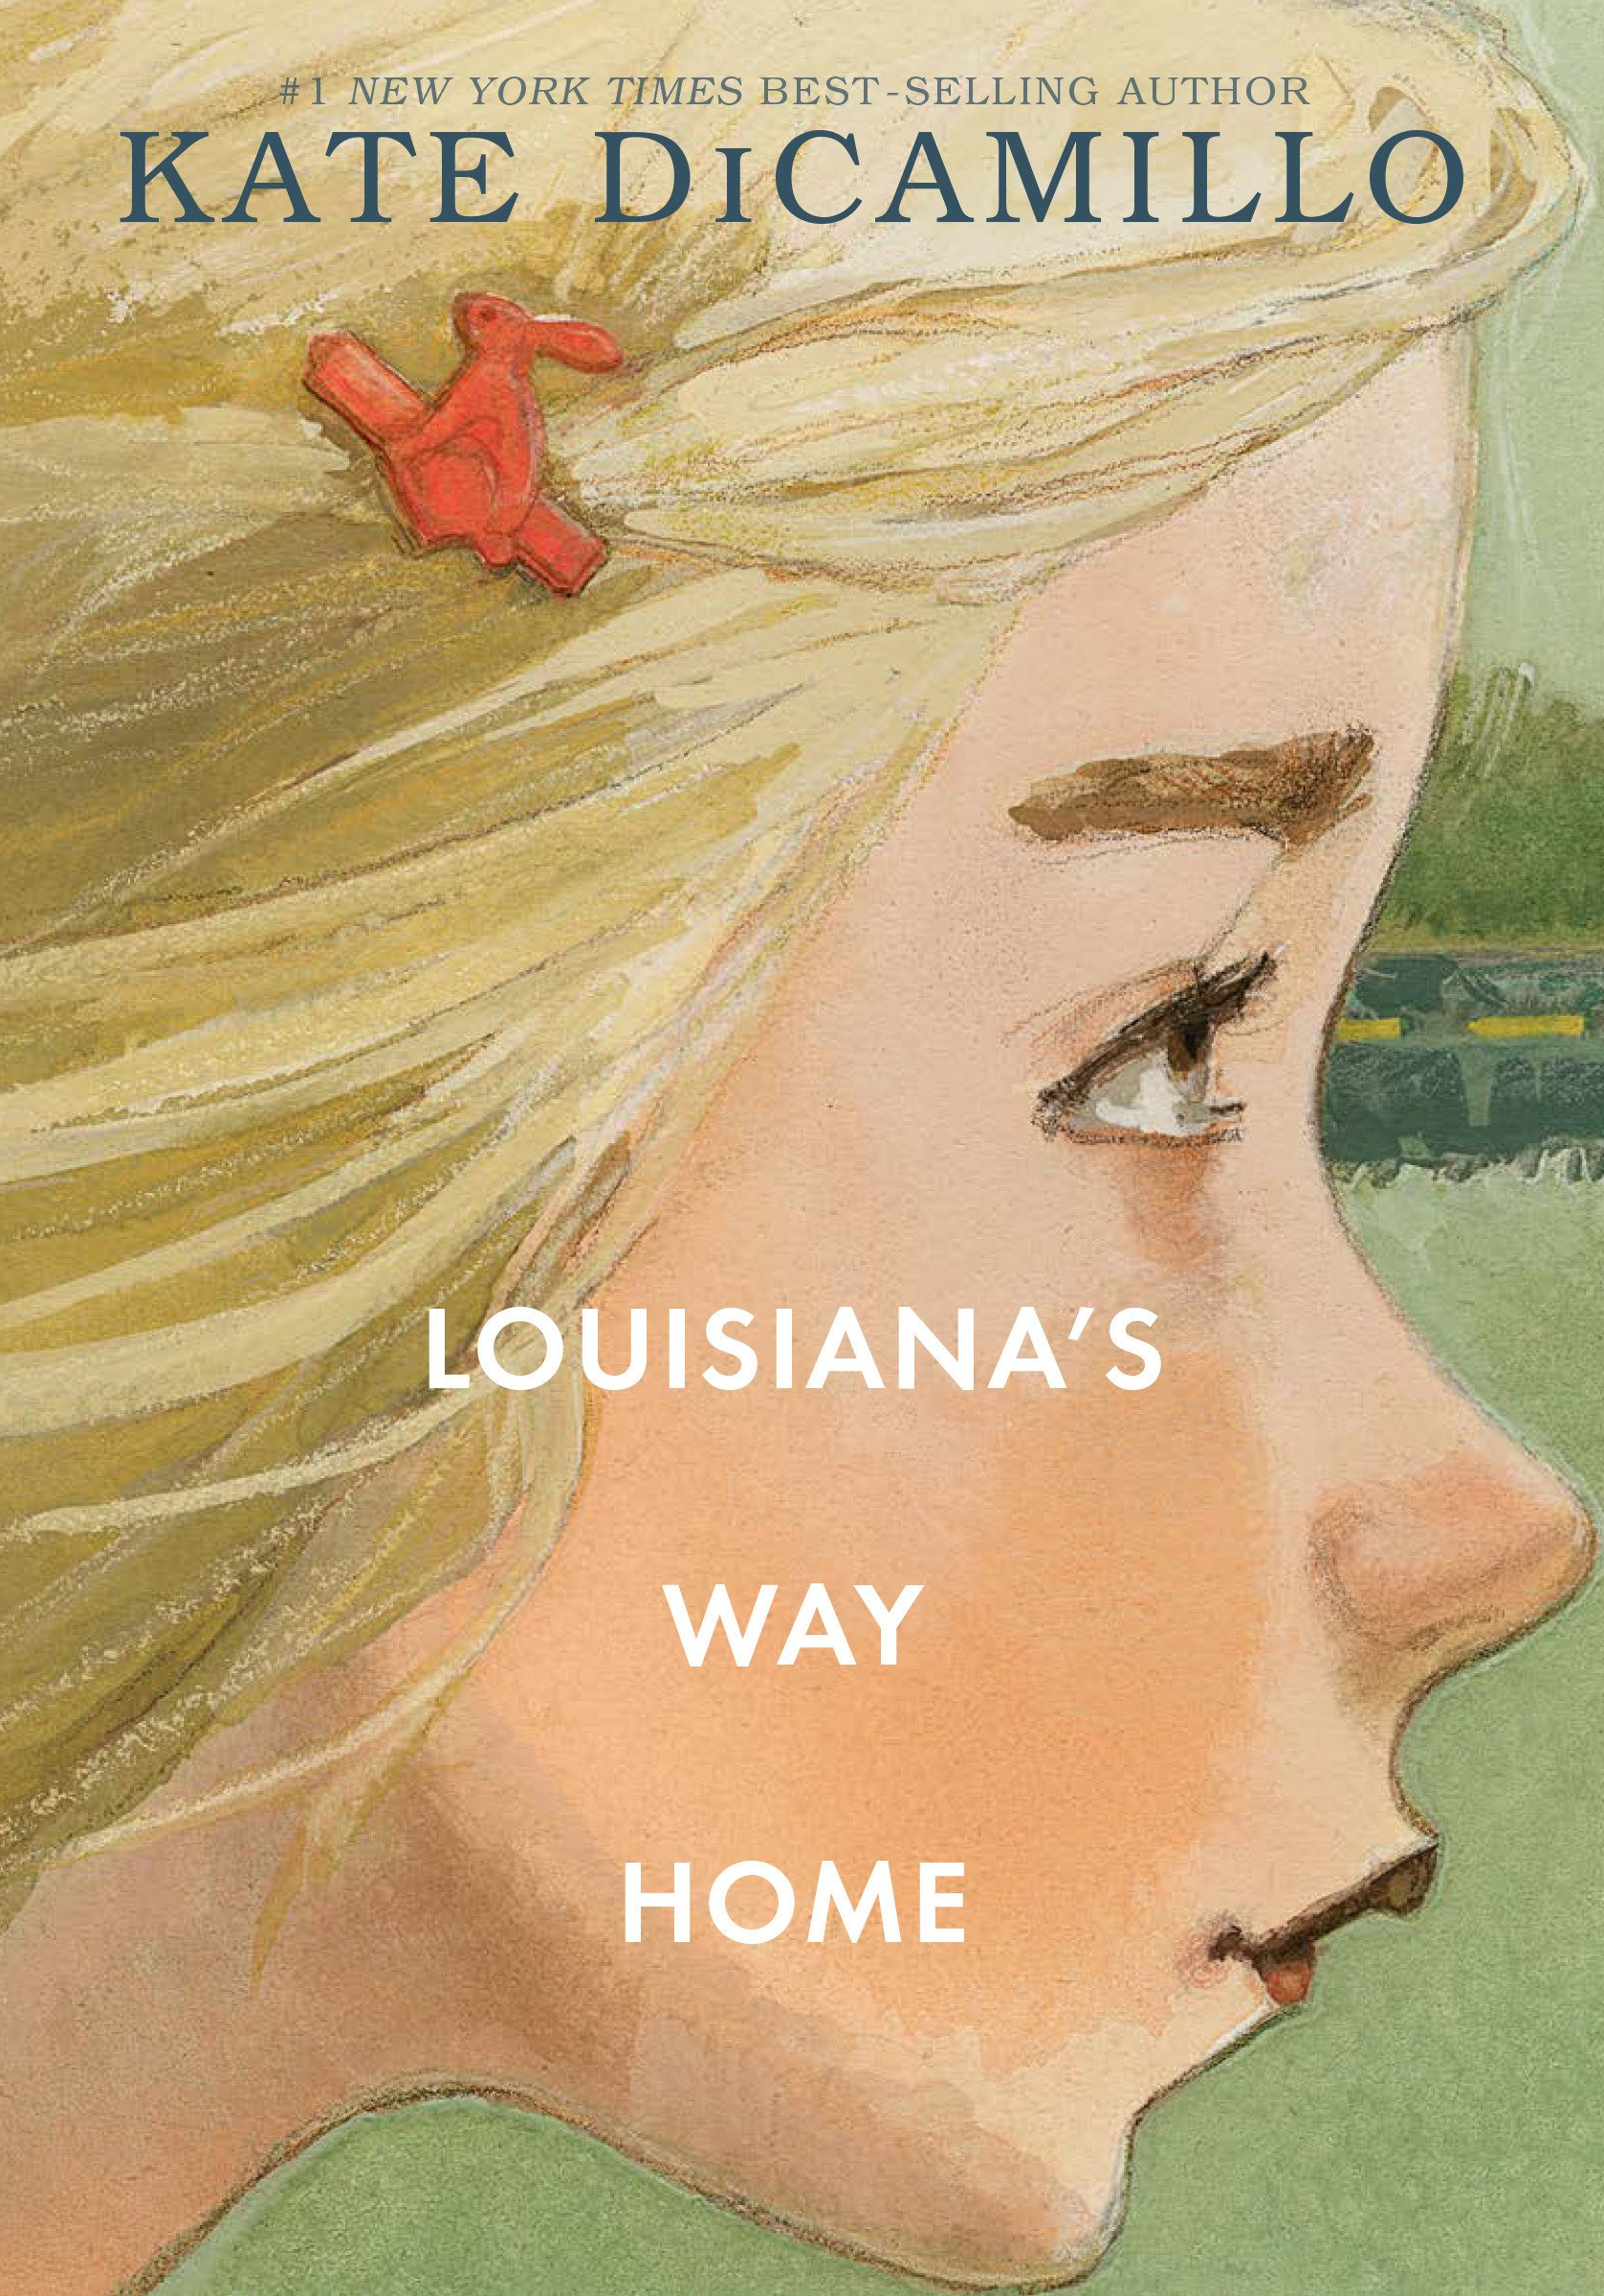 Image result for louisiana's way home